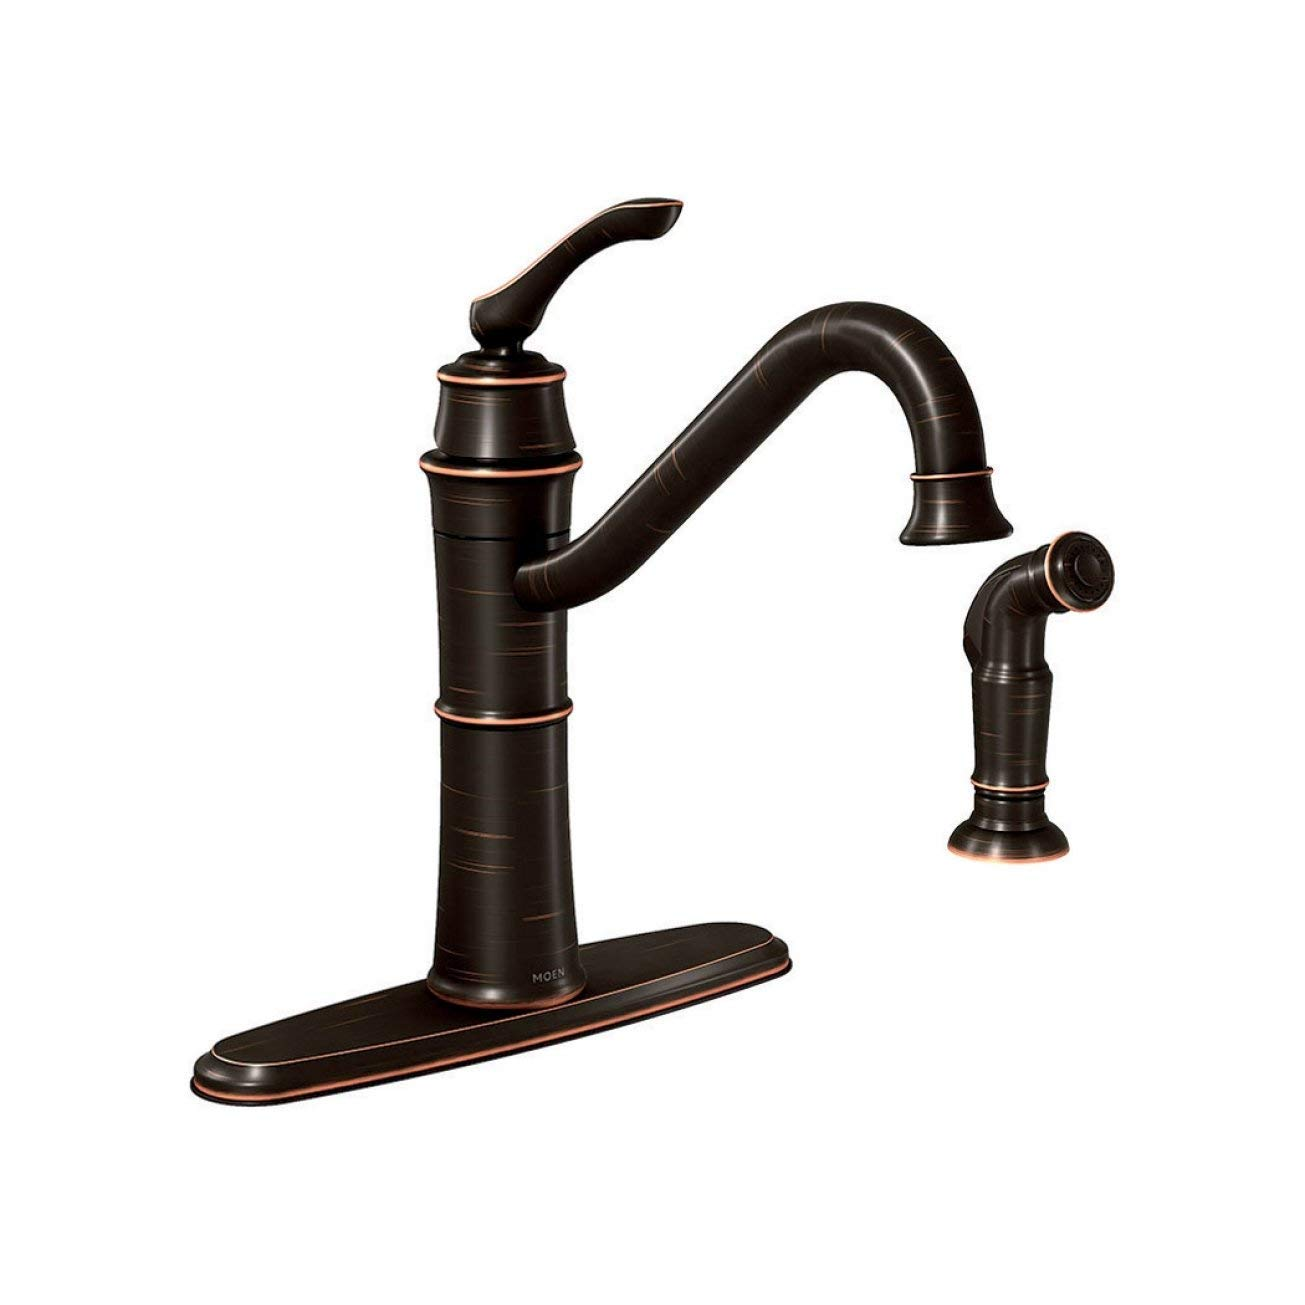 Moen 87999BRB Kitchen Faucet, 6.00 x 6.00 x 4.00 inches, Mediterranean Bronze